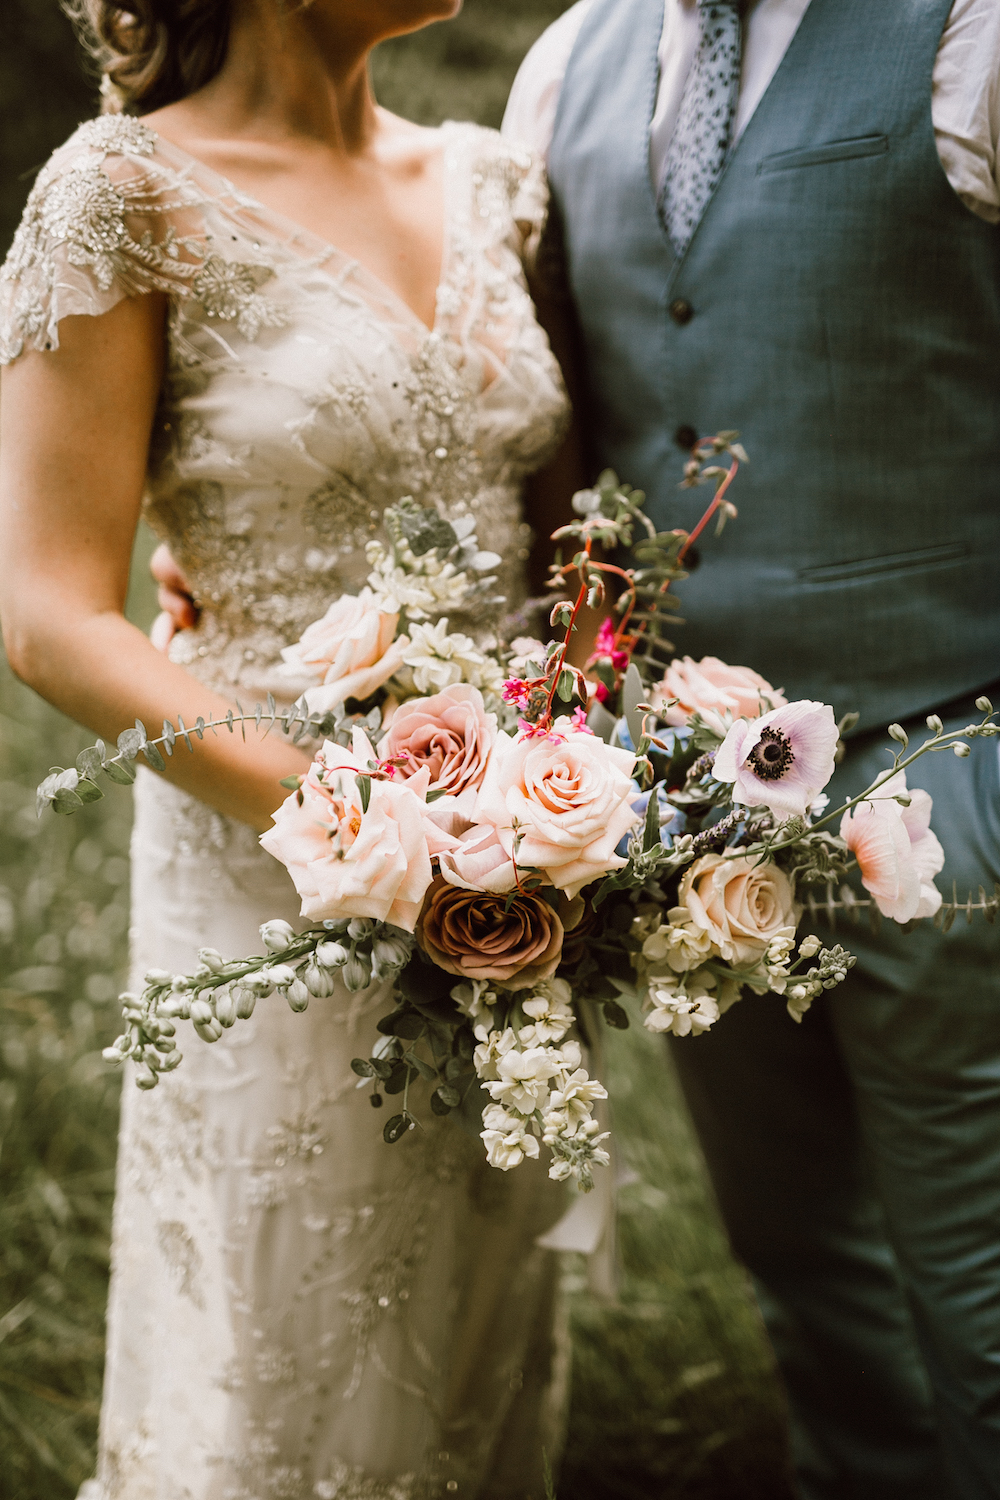 Organic Bridal Bouquet - Locally Grown Wedding Flowers